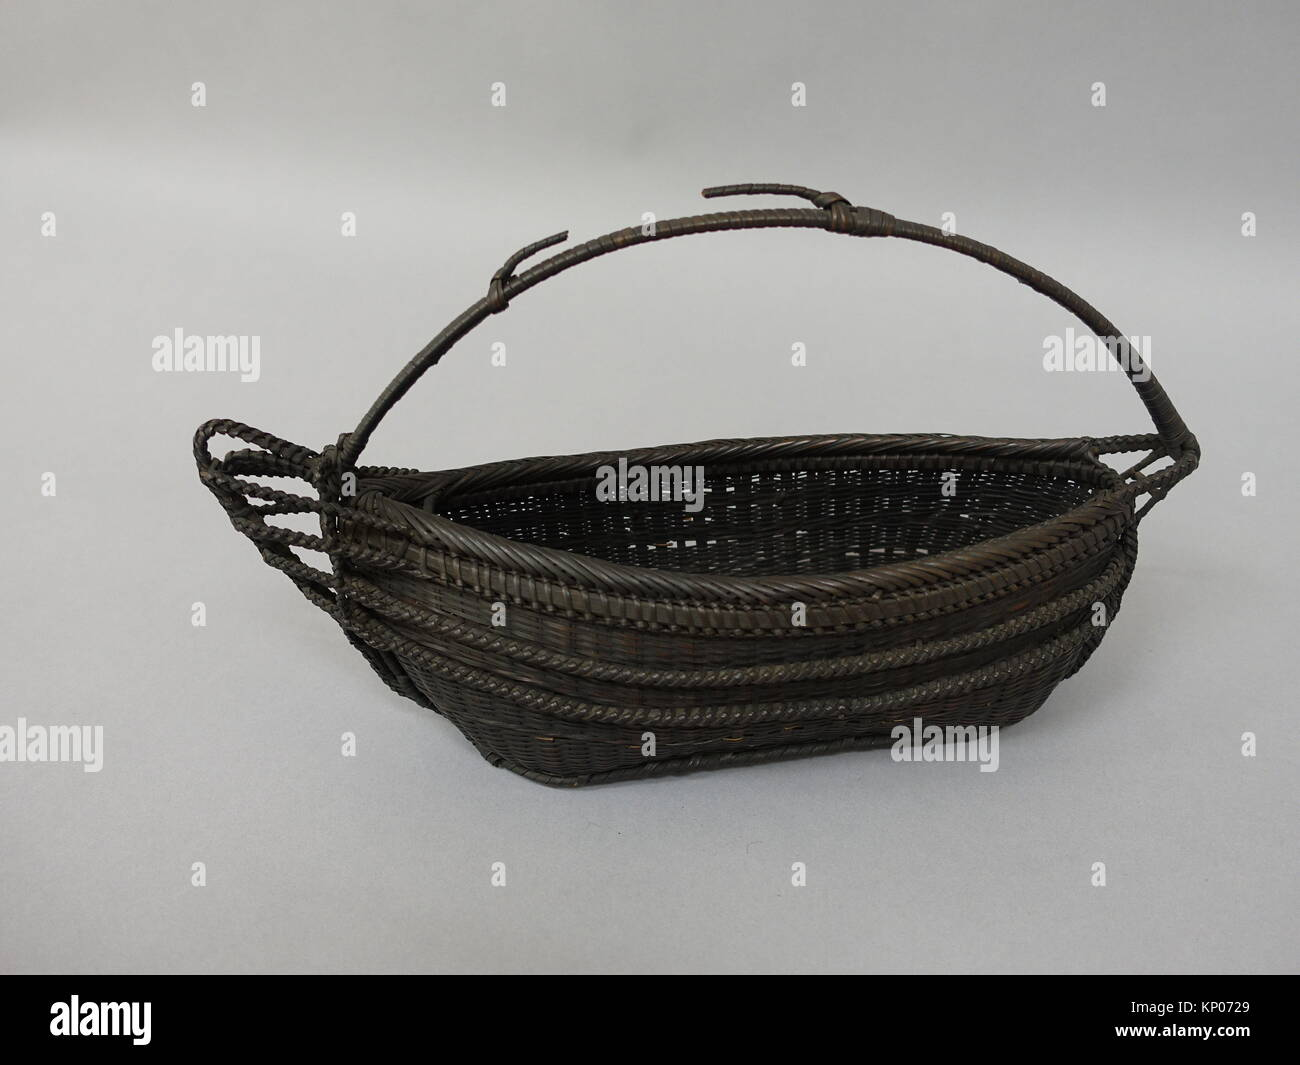 Boat-Shaped Basket. Period: Edo (1615-1868) or Meiji (1868-1912) period; Date: 19th century; Culture: Japan; Medium: Stock Photo